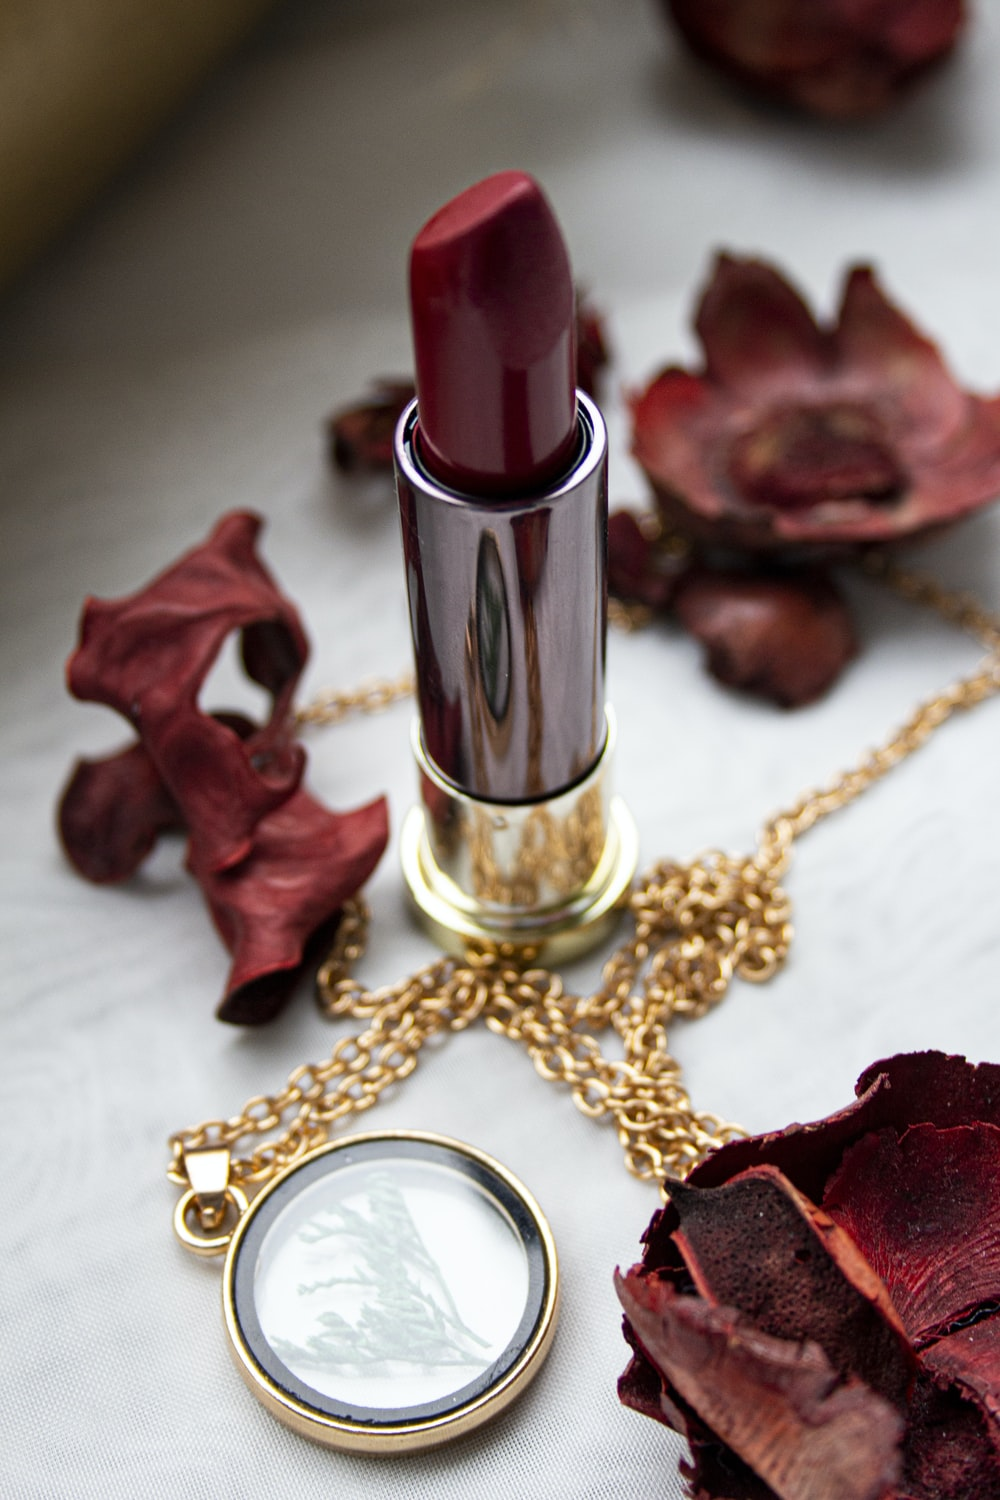 gold and red lipstick on red textile